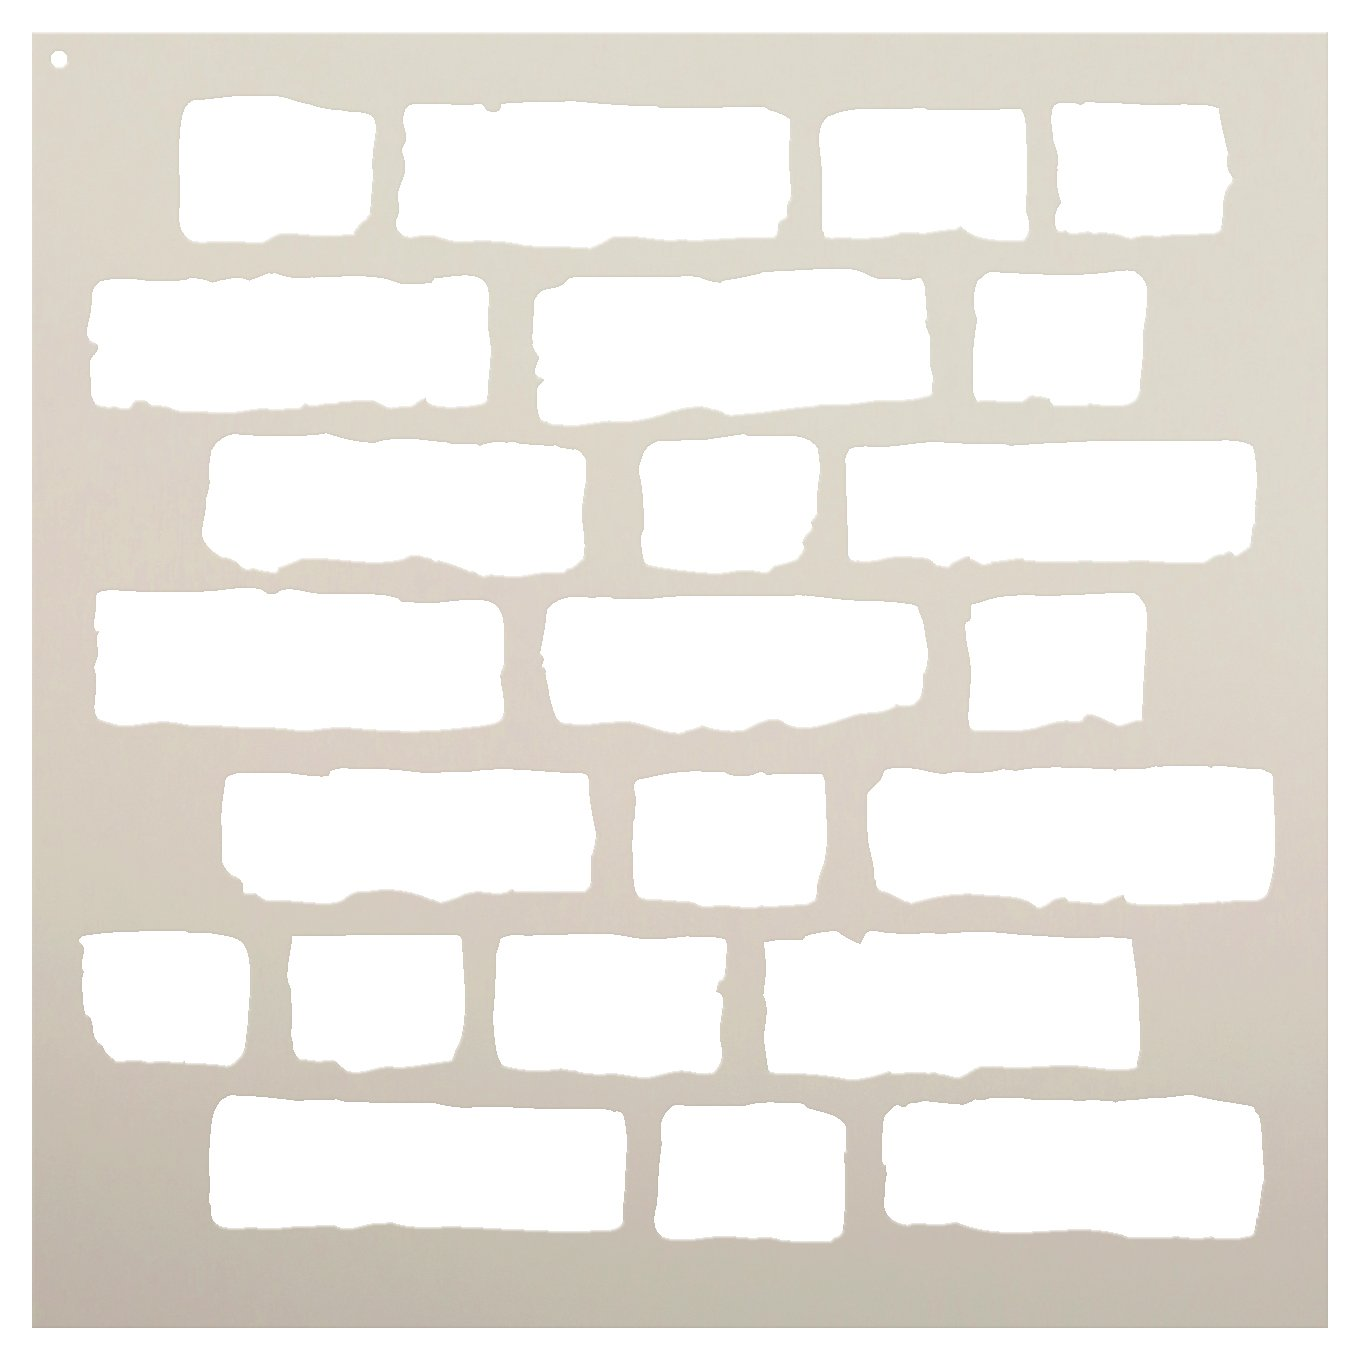 Rough Bricks Stencil by StudioR12 | Faux Finish Repeating Pattern Art - Reusable Mylar Template | Painting, Chalk, Mixed Media | Use for Crafting, DIY Home Decor - STCL703 CHOOSE SIZE (18'' x 18'')